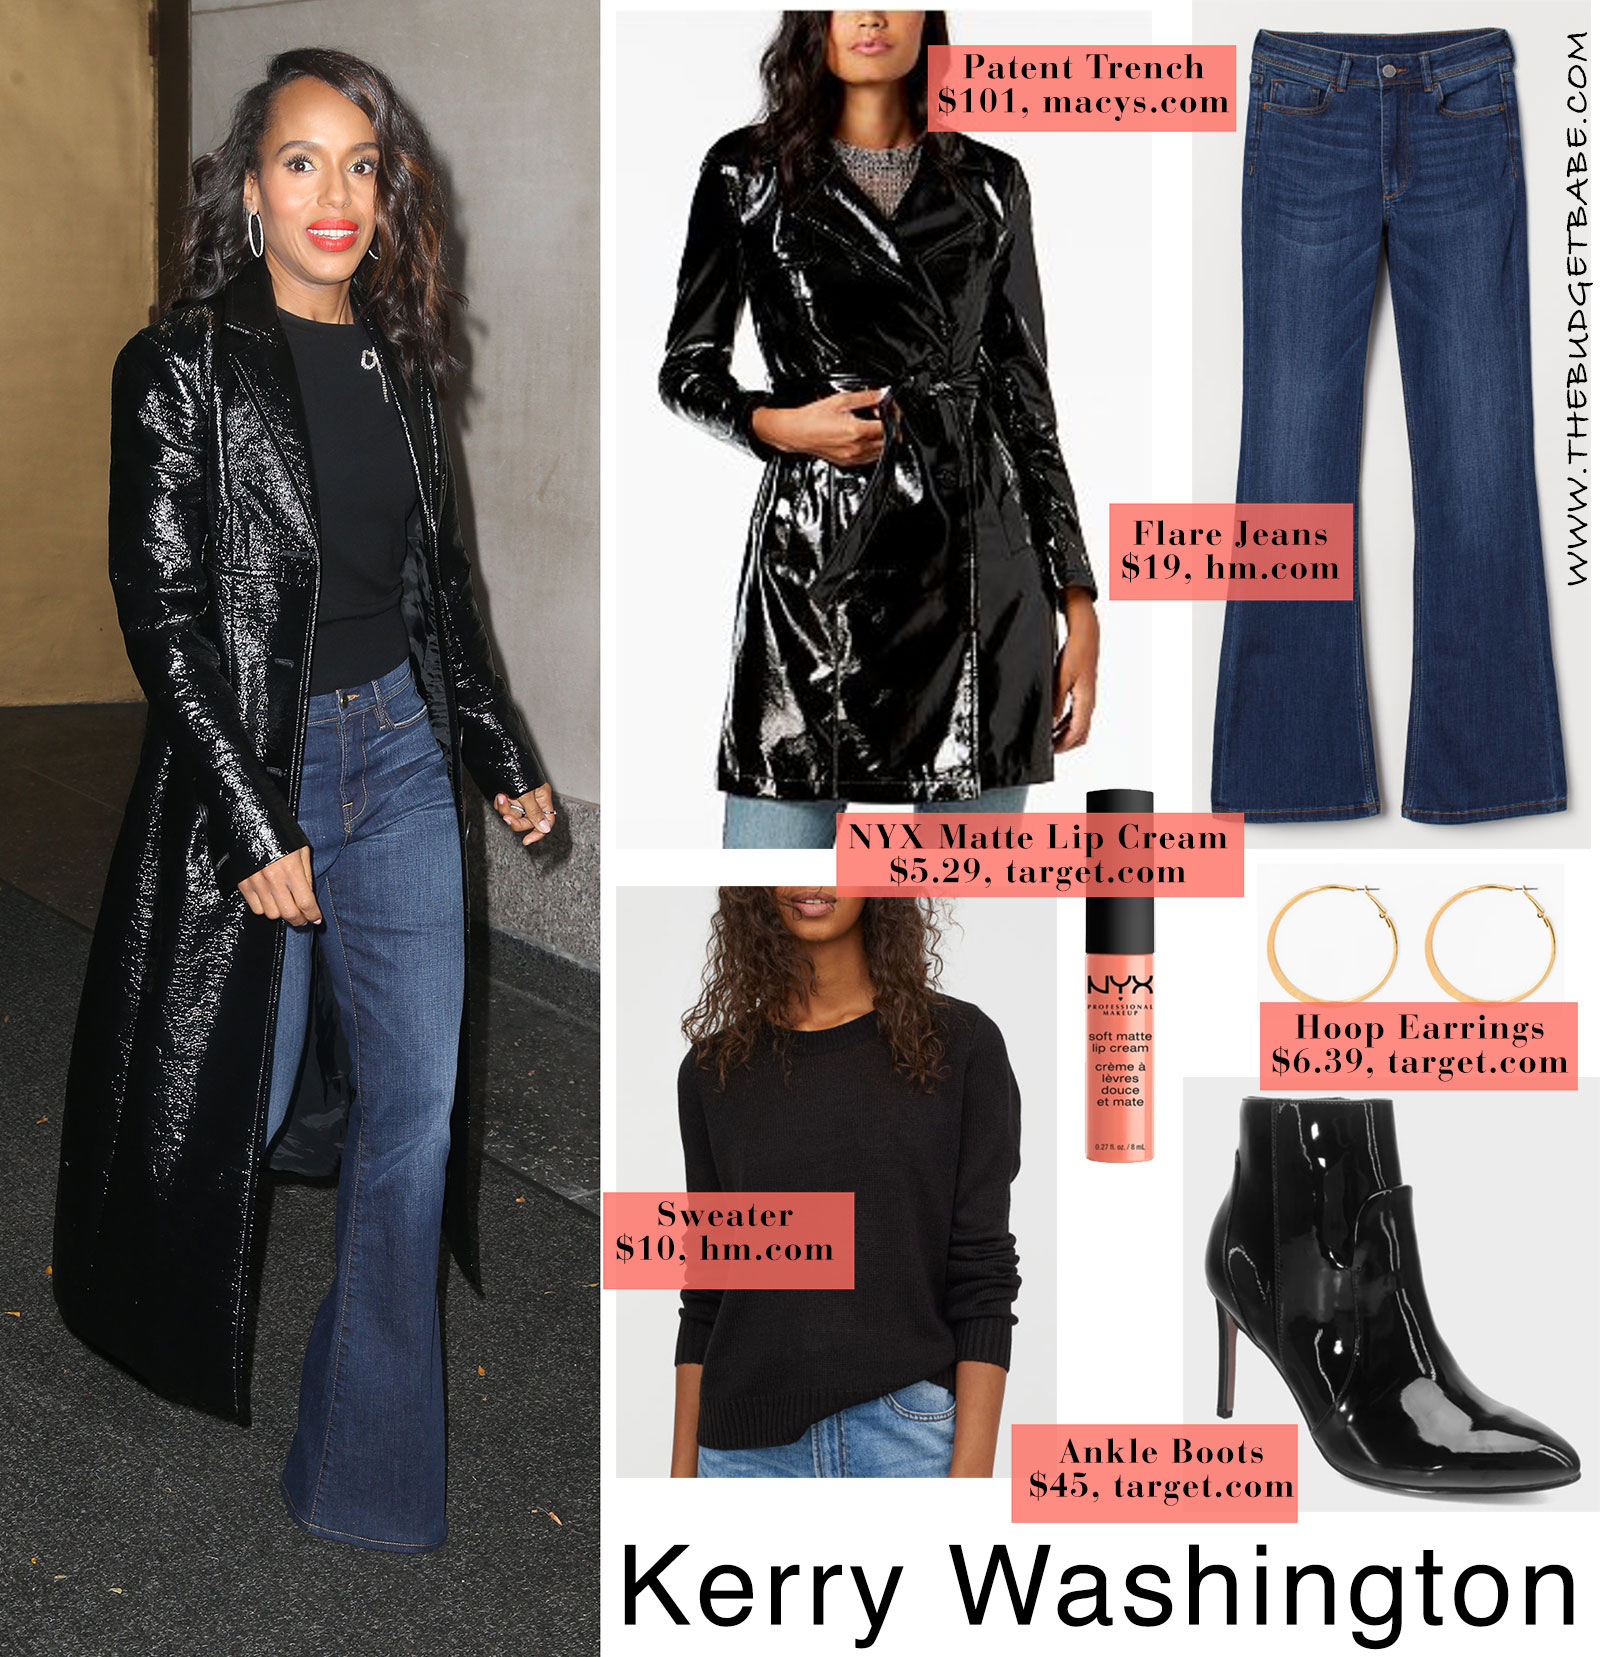 Kerry Washington patent leather trench coat look for less